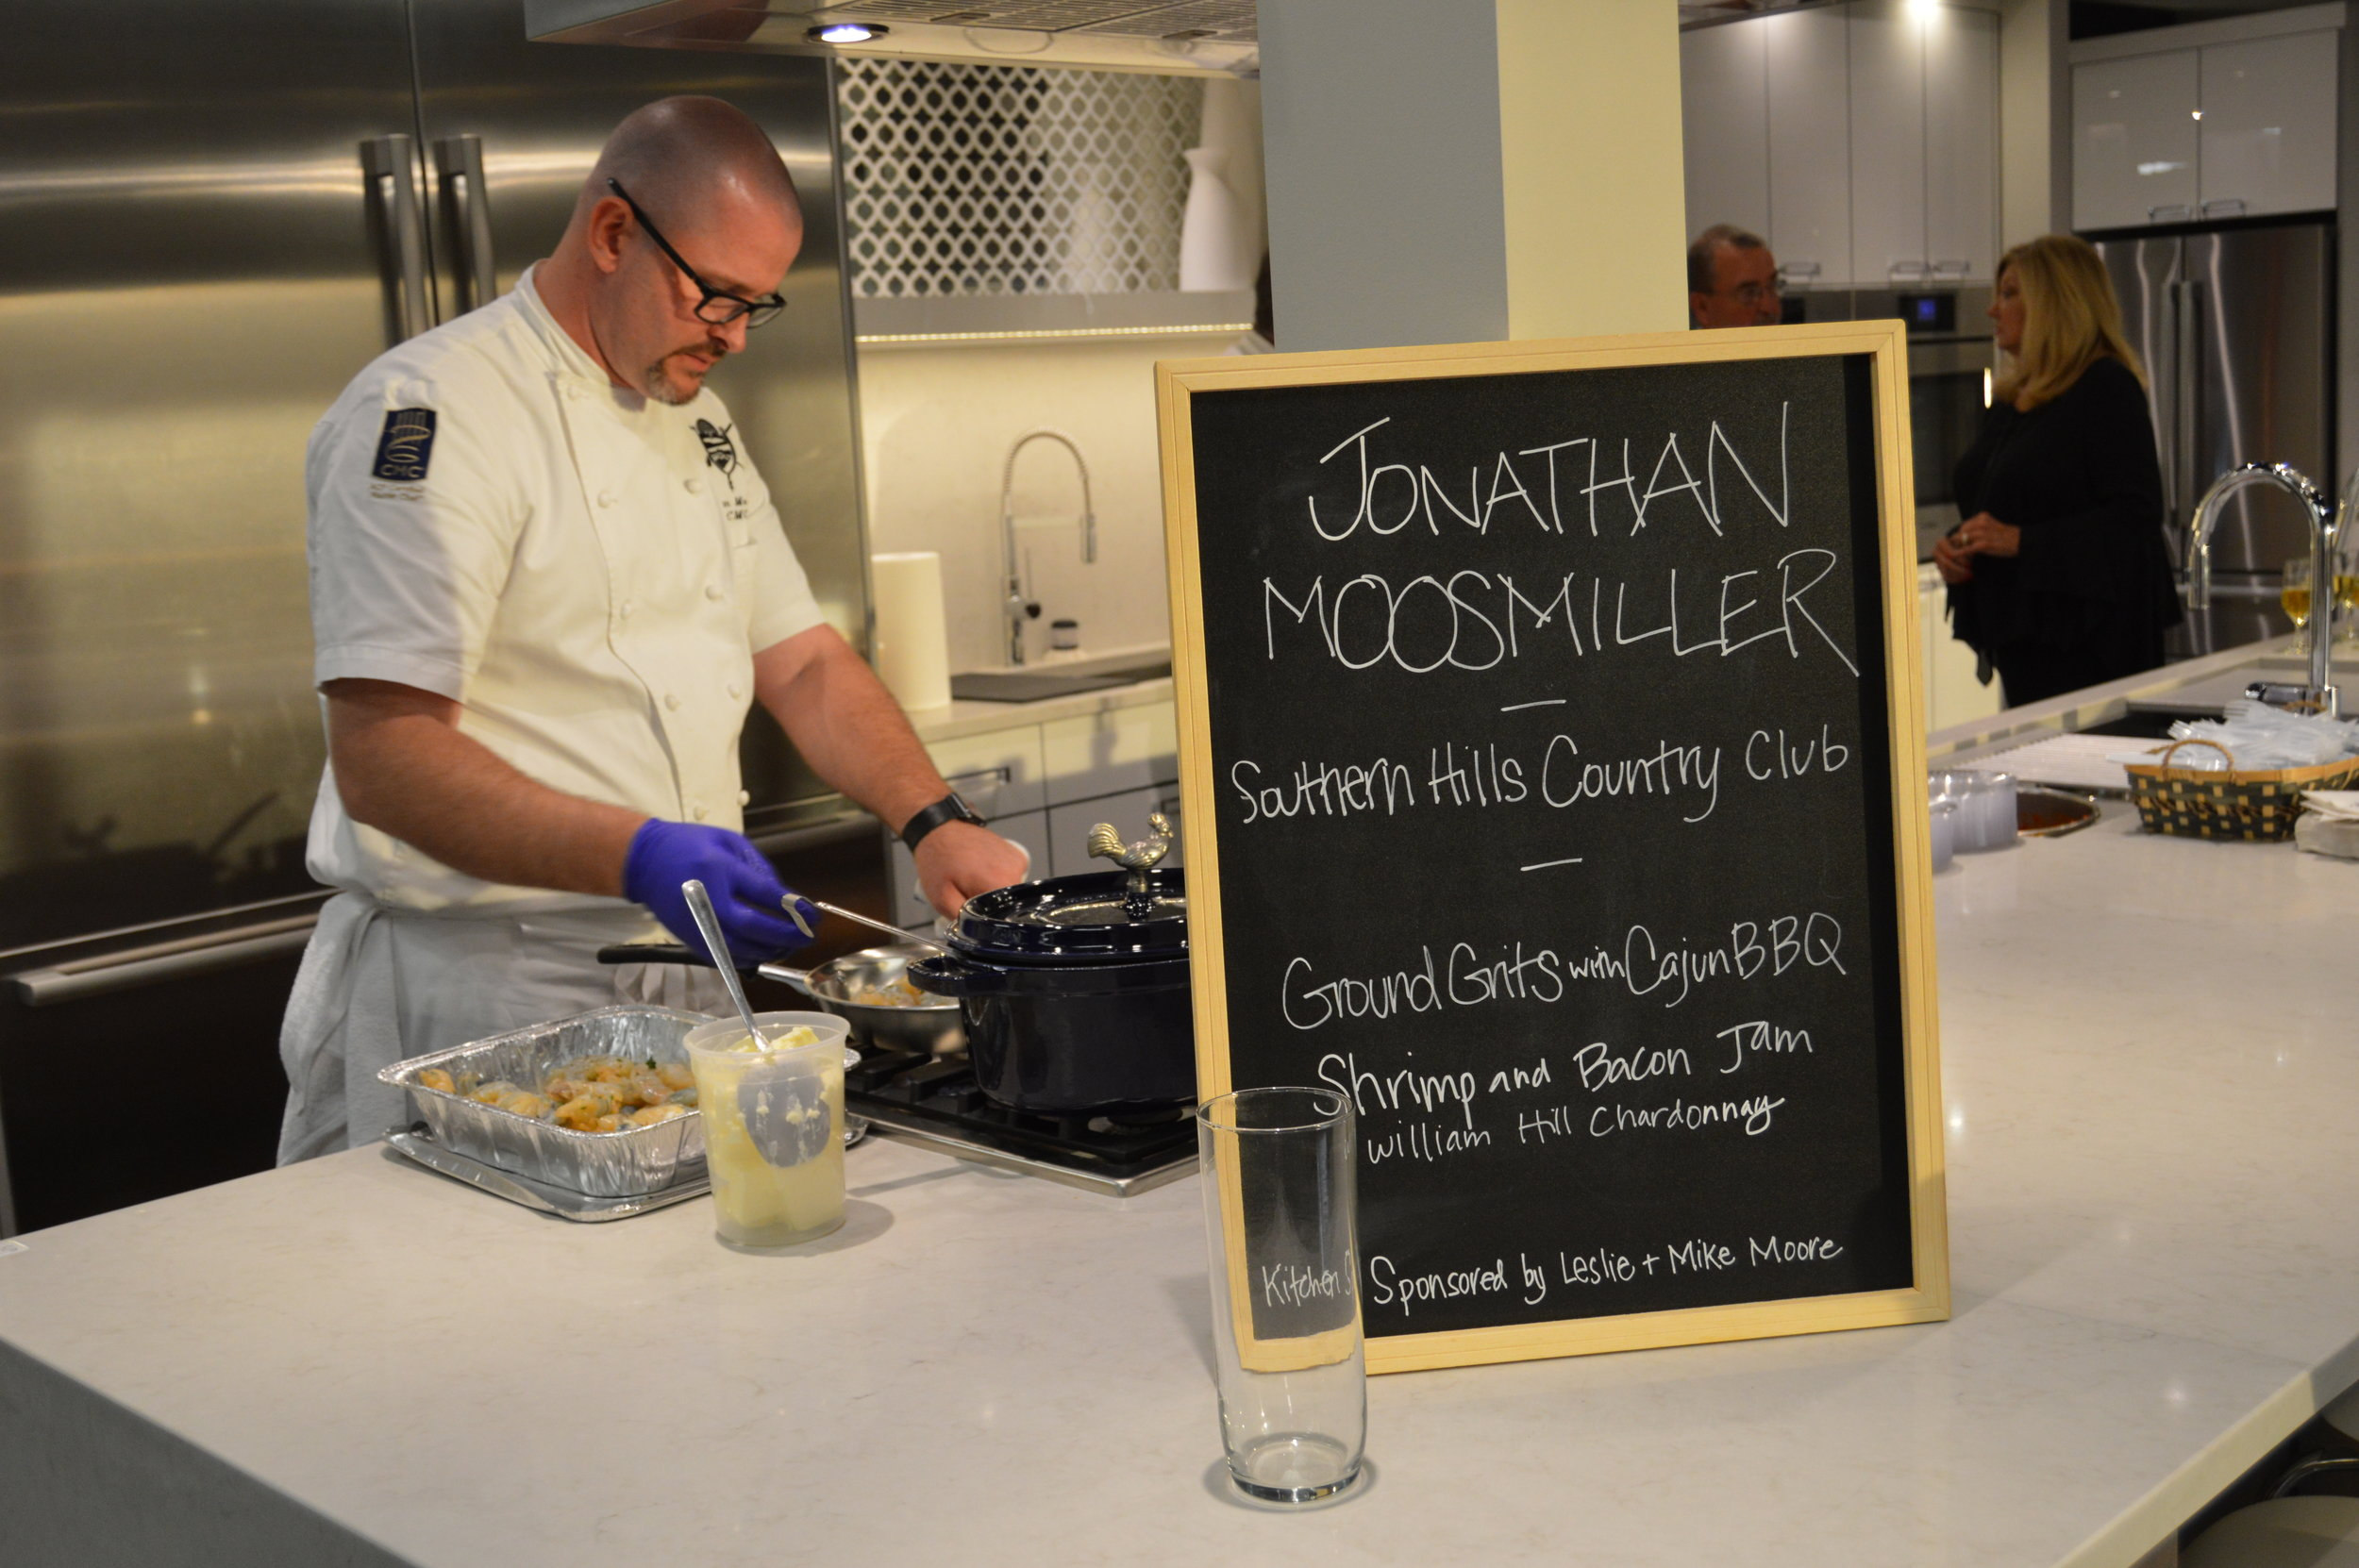 Jonathan Moosmiller, CMC, Southern Hills Country Club 2017 Coordinating Chef